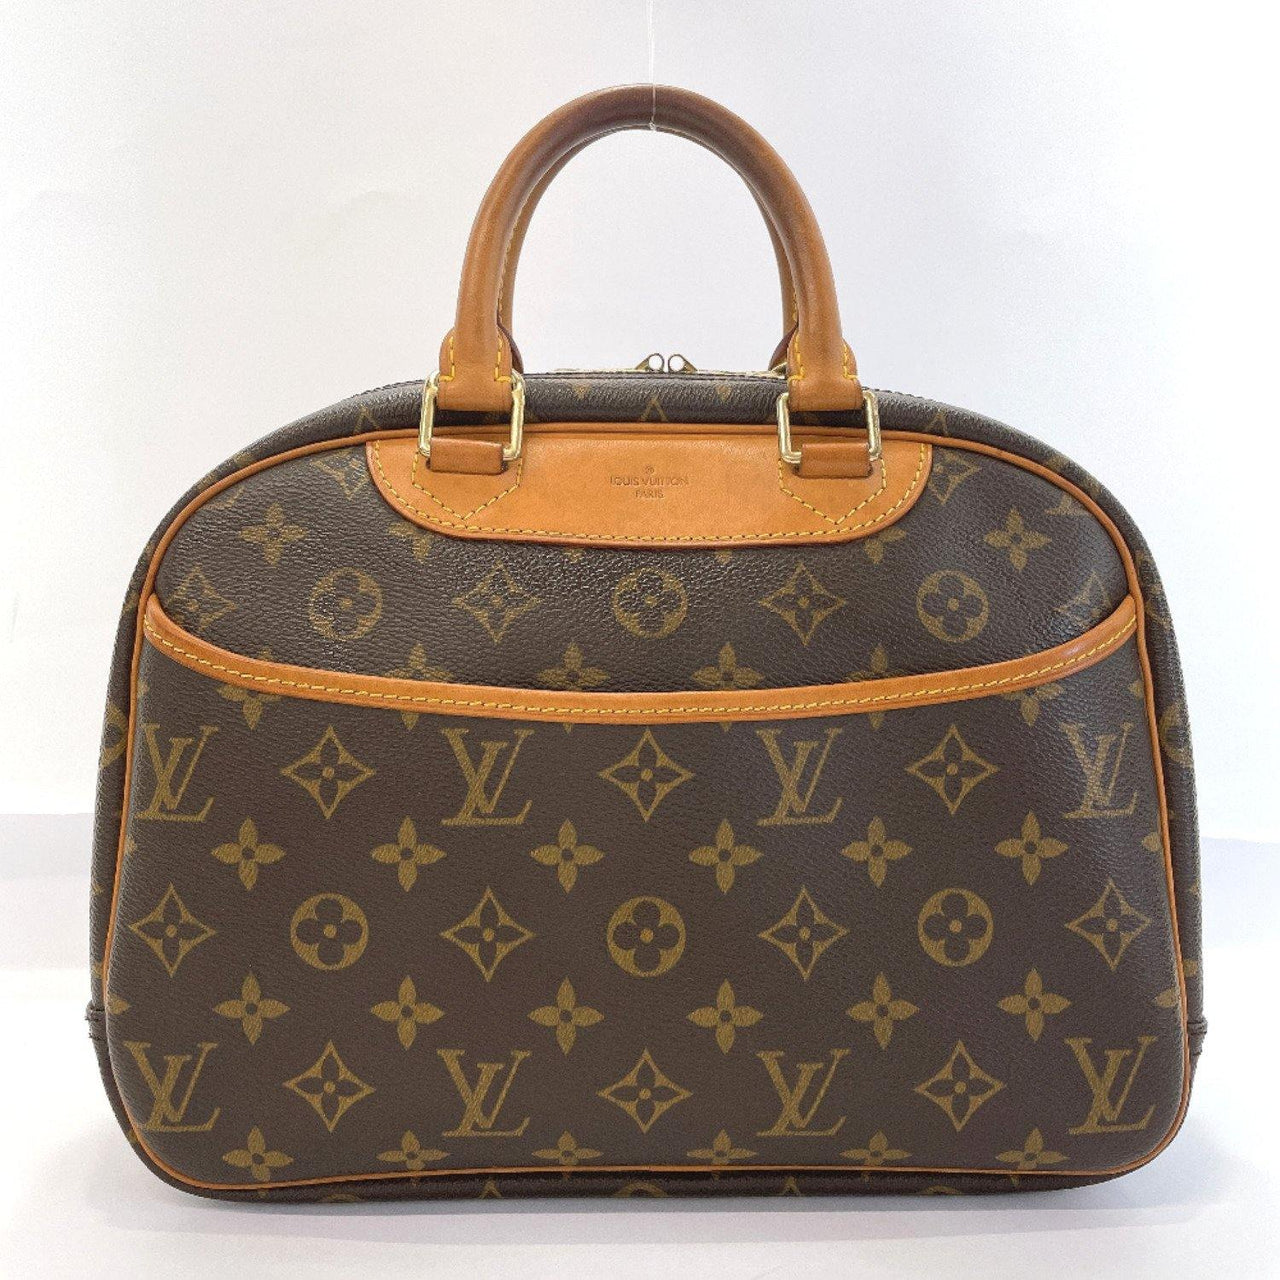 LOUIS VUITTON Handbag M42228 Trueville Monogram canvas Brown Women Used - JP-BRANDS.com